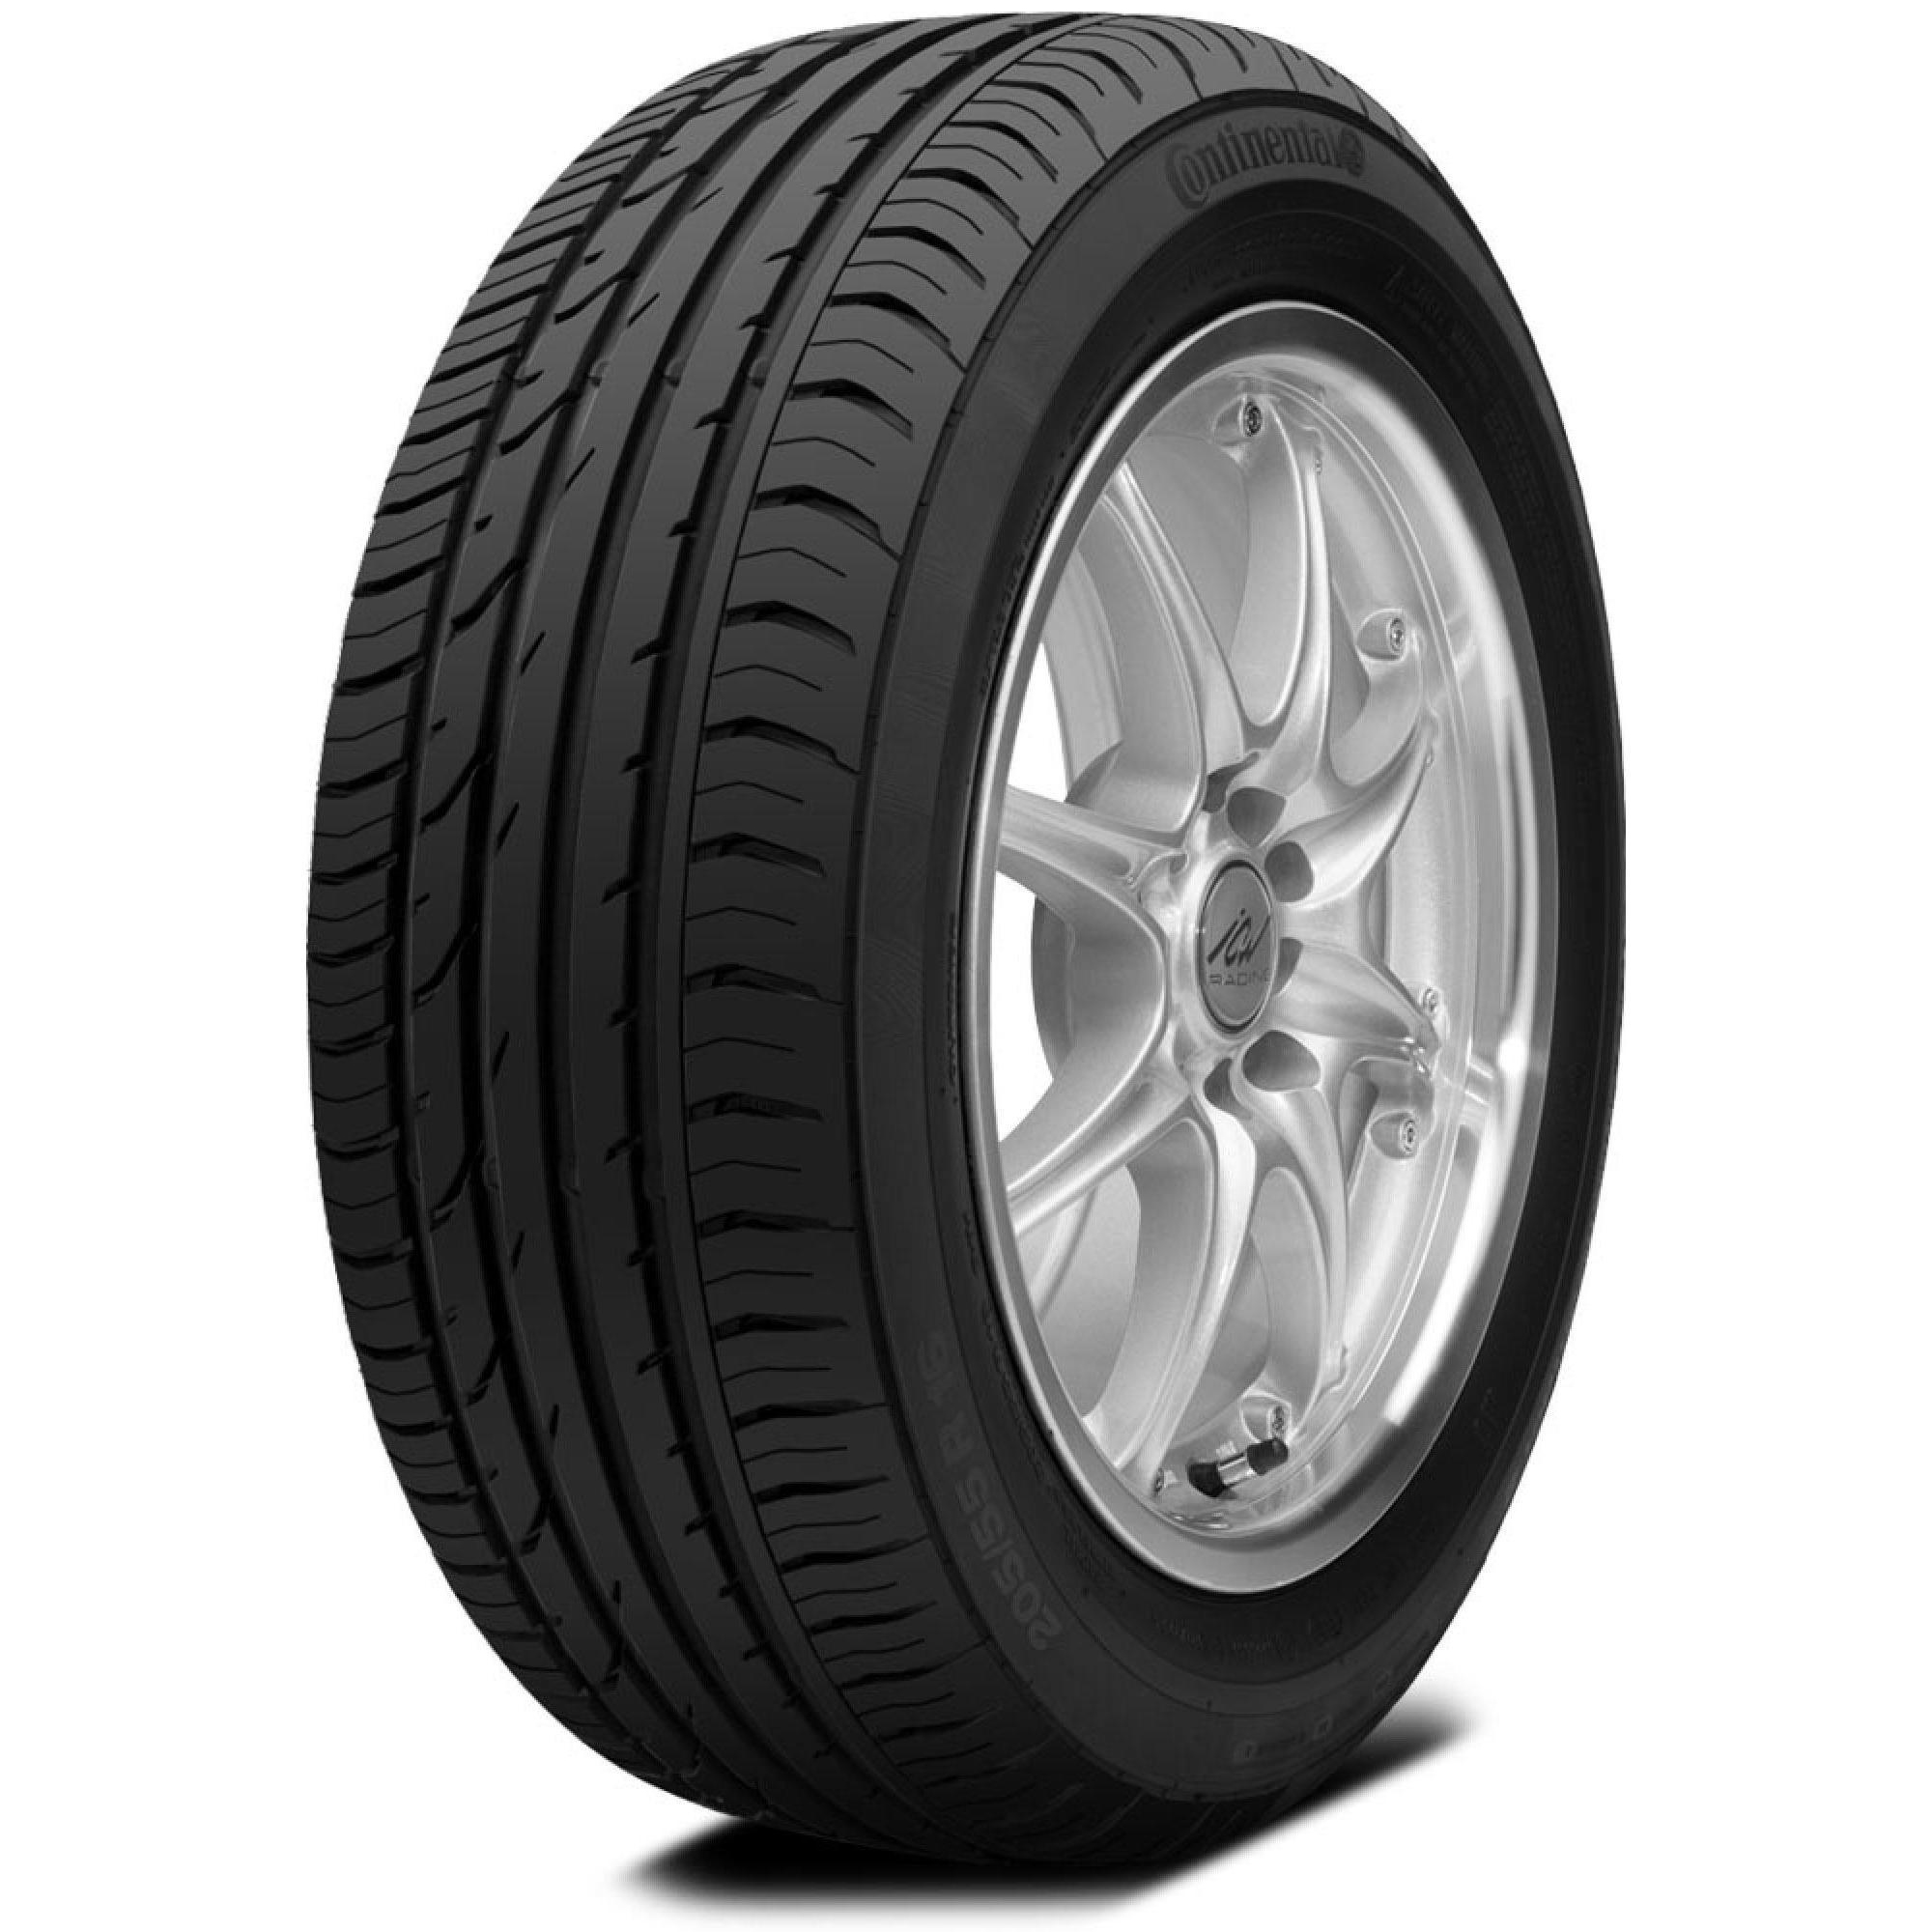 Continental CONTI PREMIUM CONTACT 2 XL 215/60 R 16 Tubeless 99 V Car Tyre